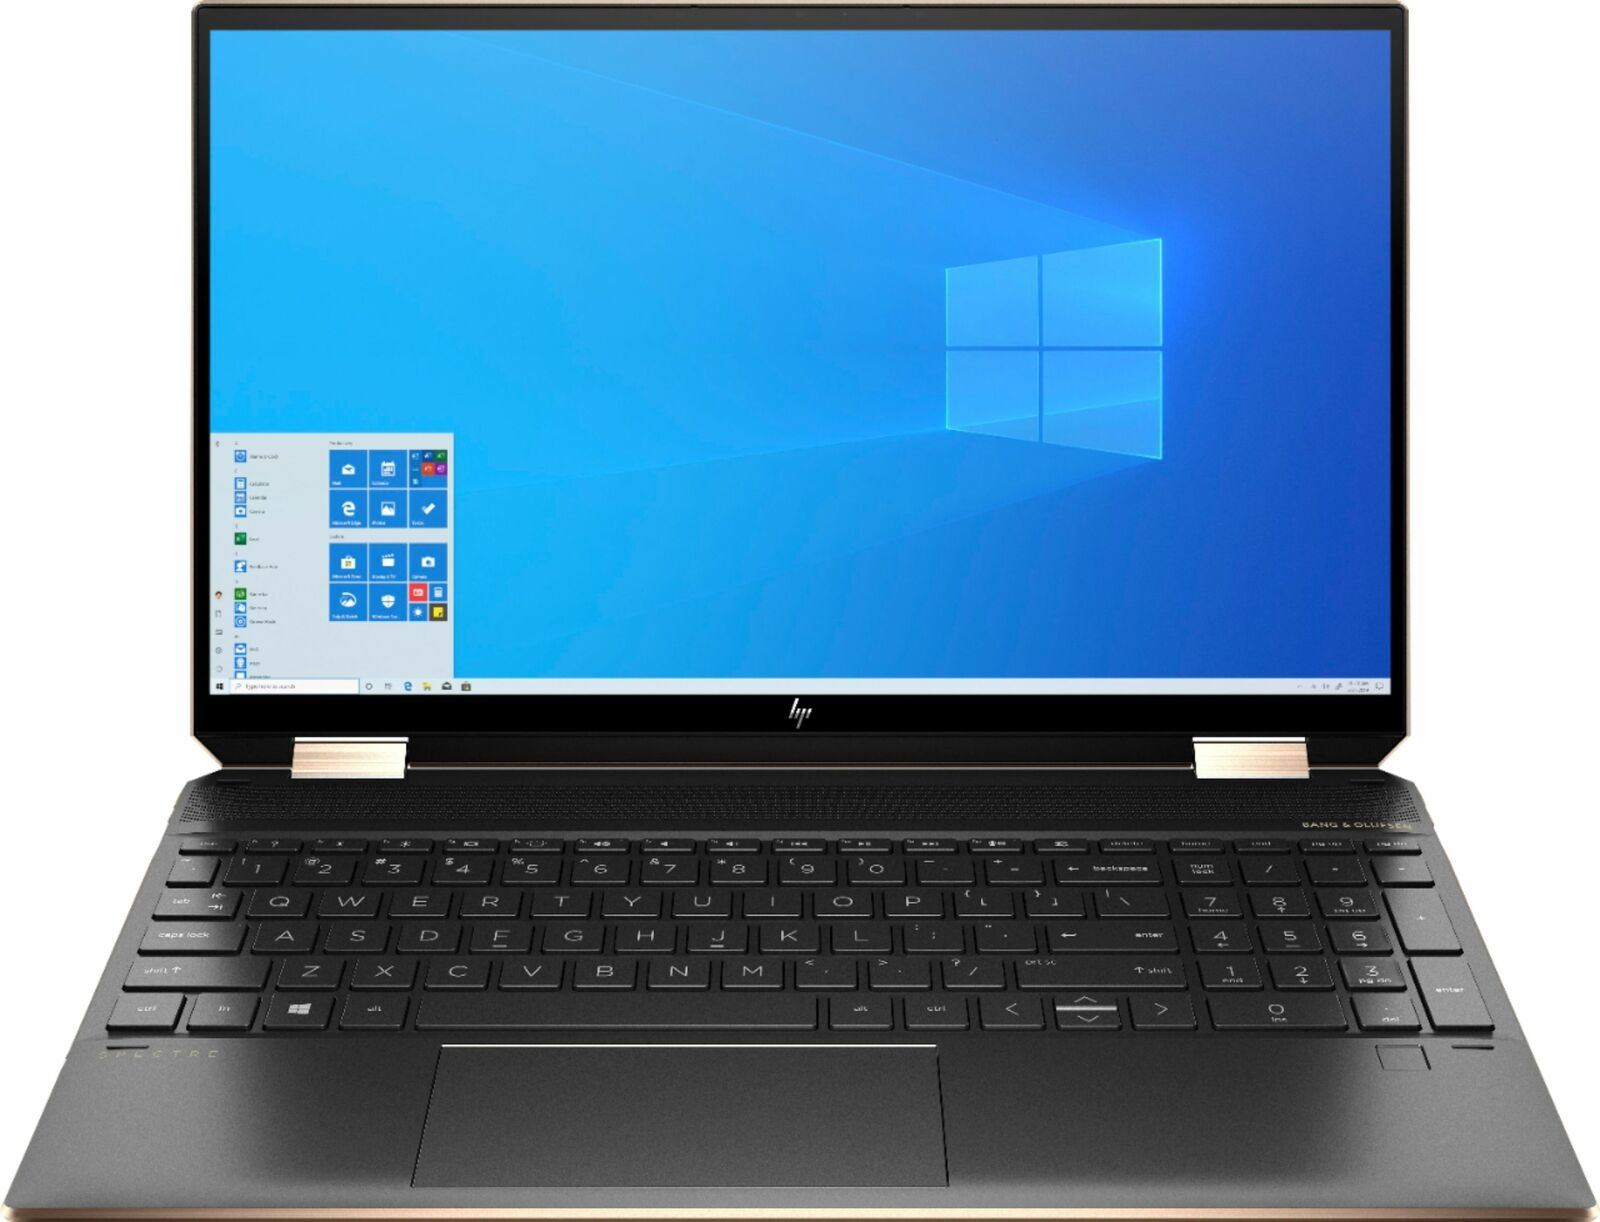 Dell I7548 7130 Inspiron 12gb 1 Tb 15 6 4k Ultra Hd Touch Screen Laptop For Sale Online Ebay